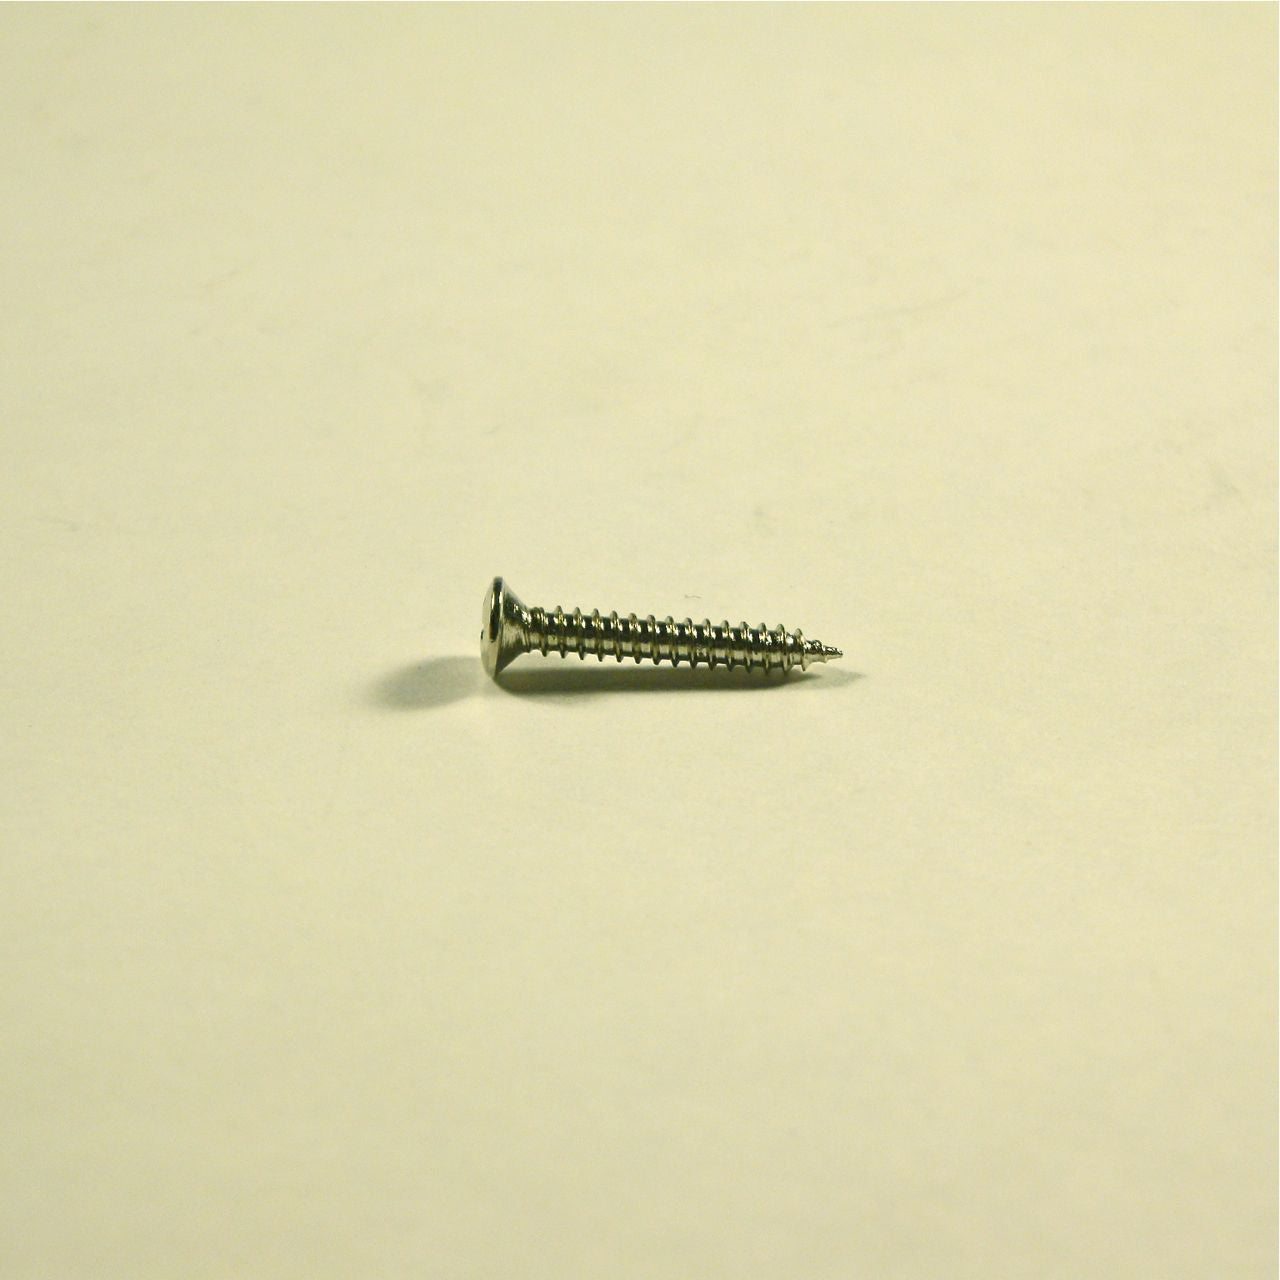 Screw for humbucker ring, long